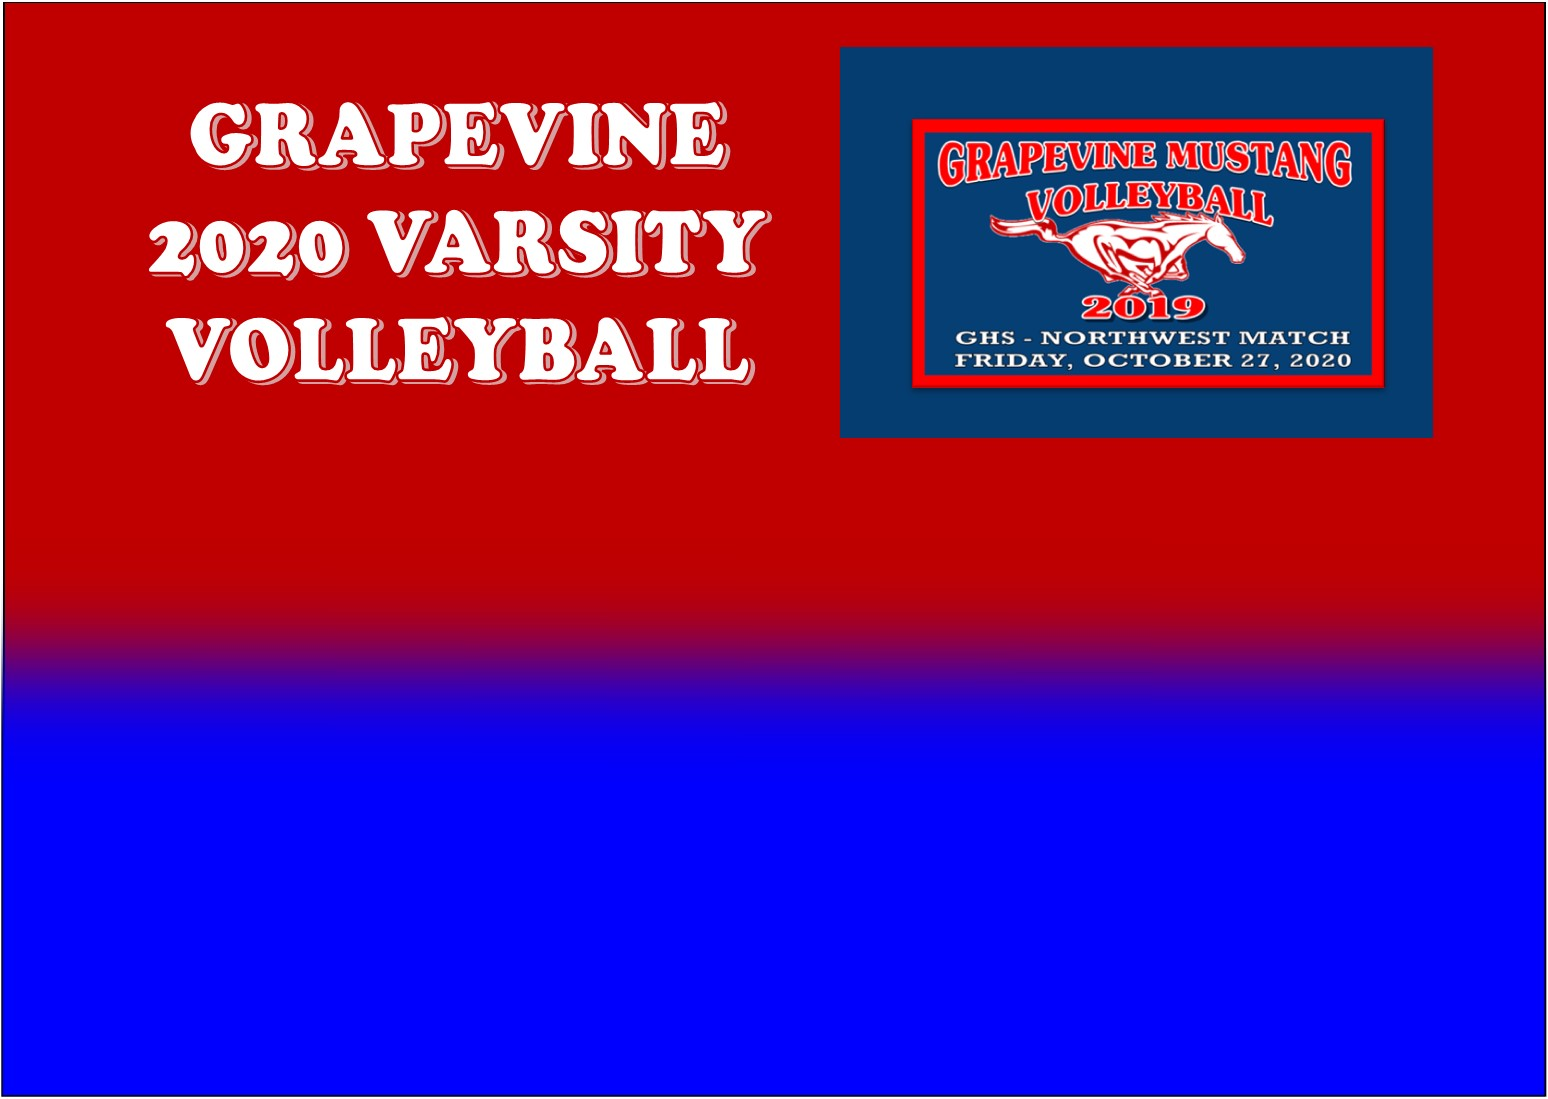 GCISD Volleyball: Grapevine Lady Mustangs Tripped Up by Northwest Lady Texans 3-2